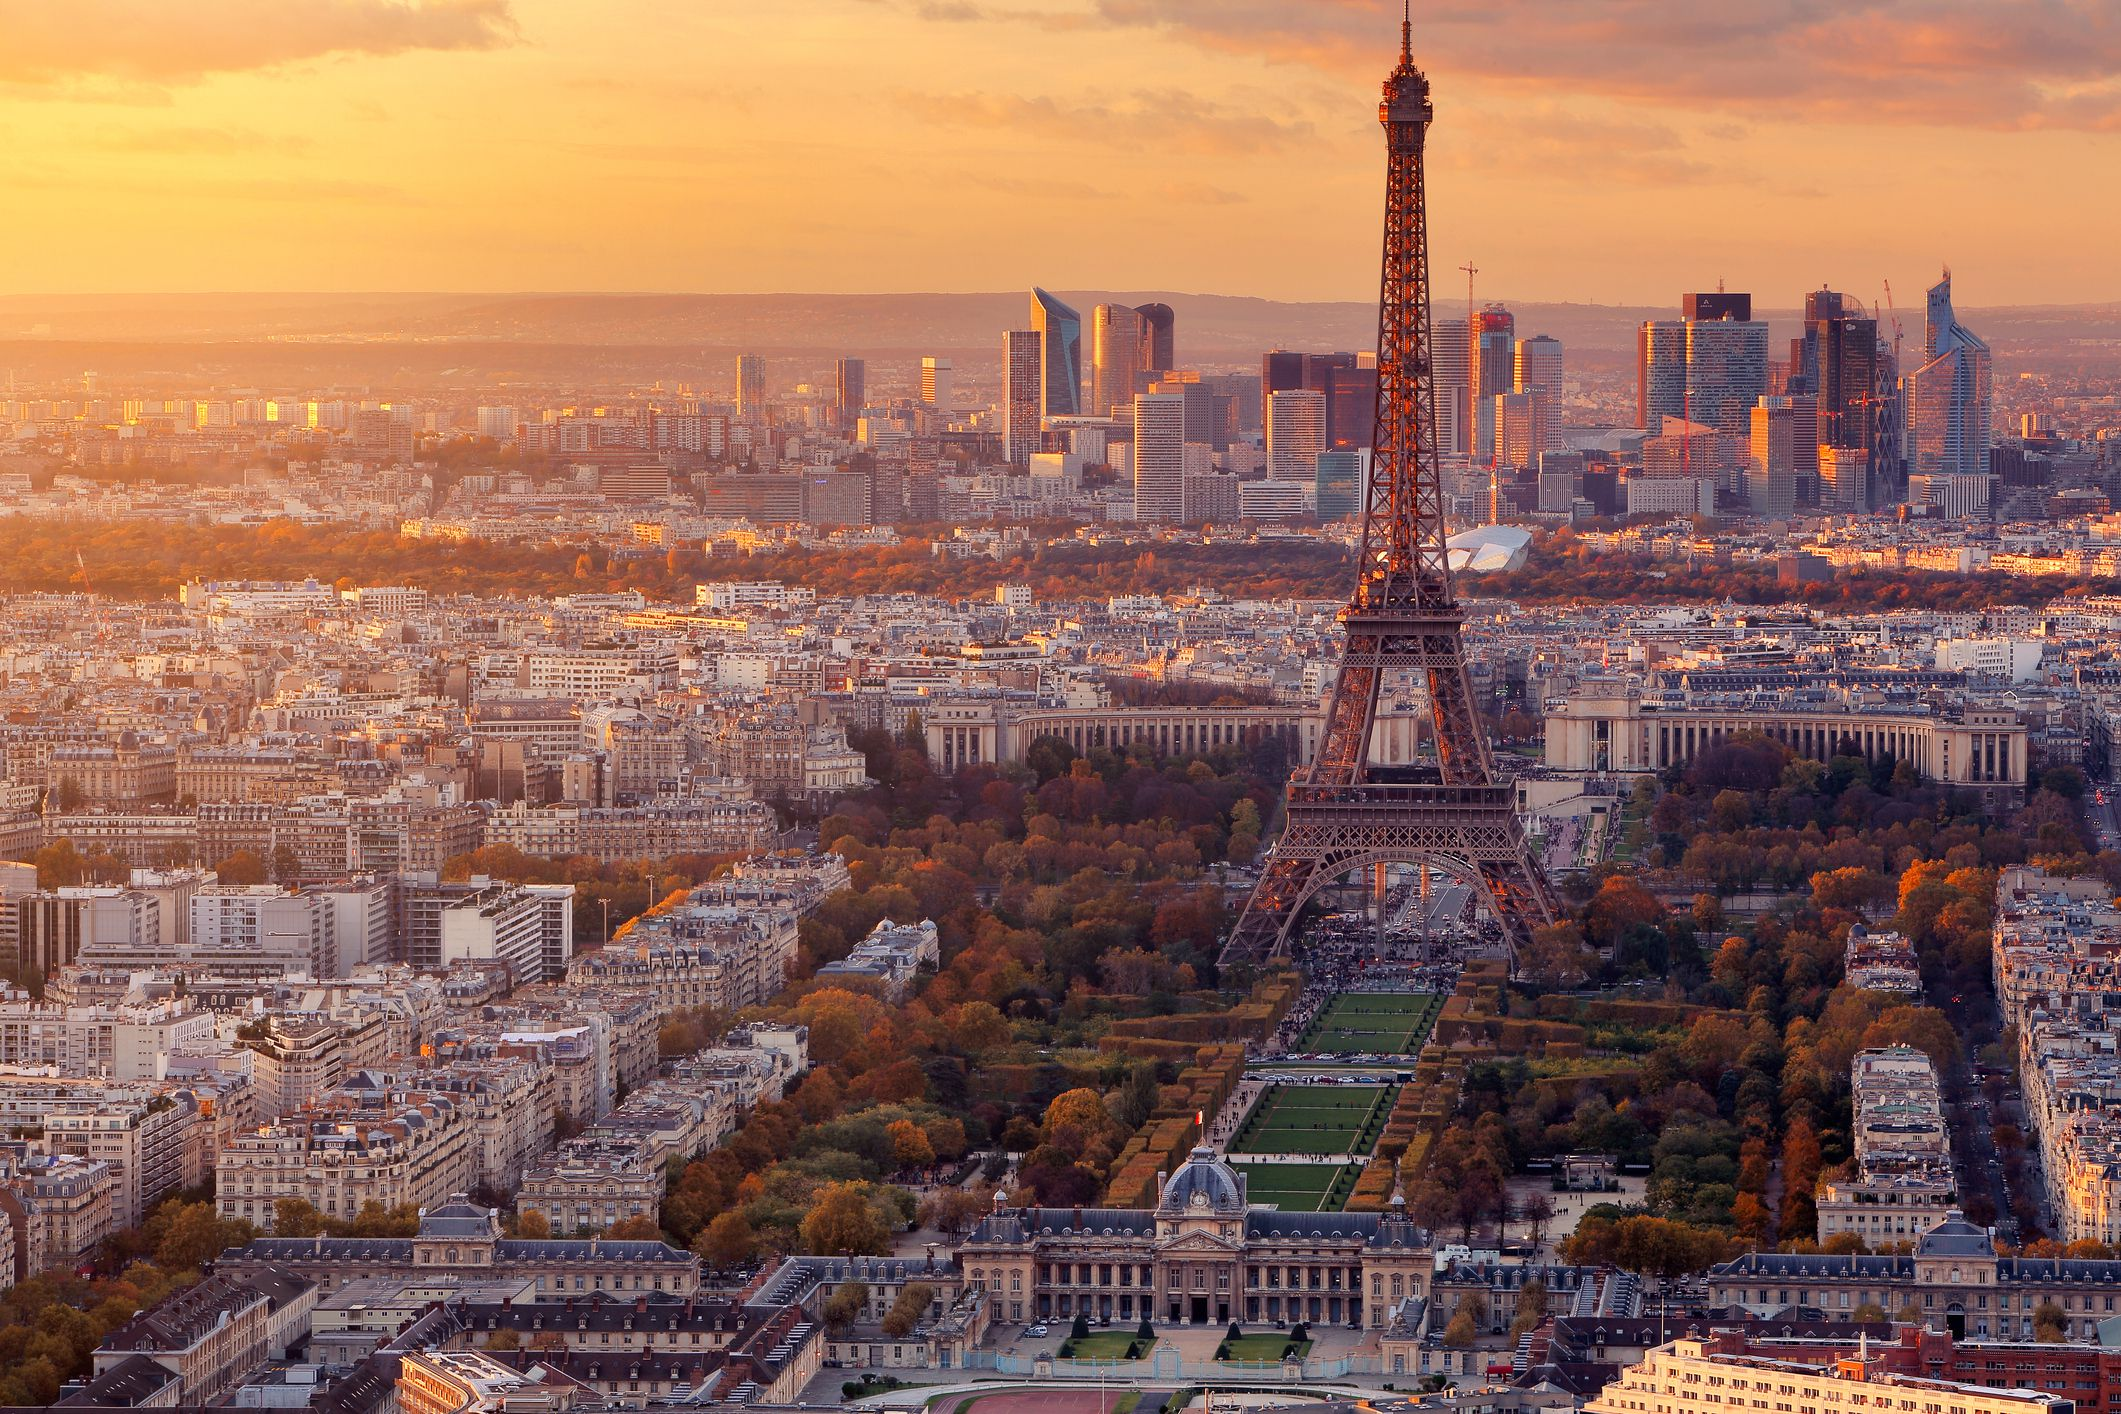 View of Paris and the Eiffel Tower from Montparnasse Tower